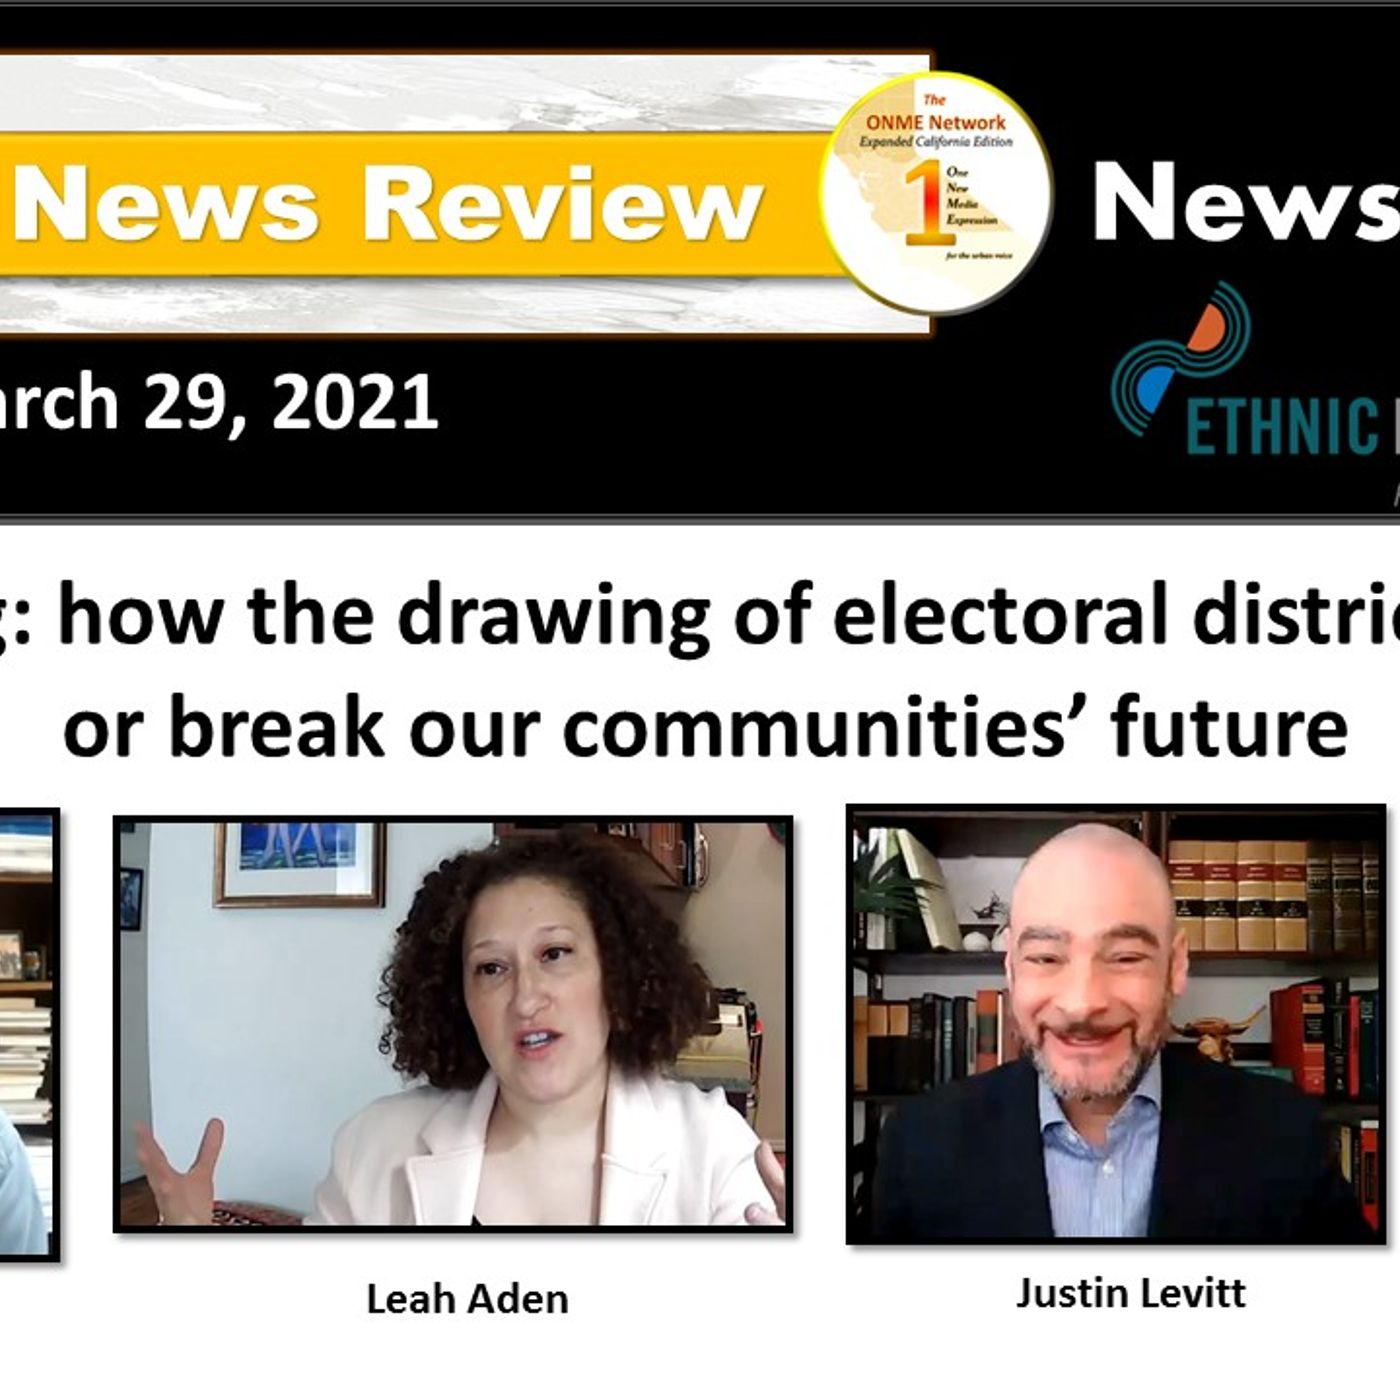 News Too Real 3-29-21: The drawing of electoral districts can cost the future of Black communities